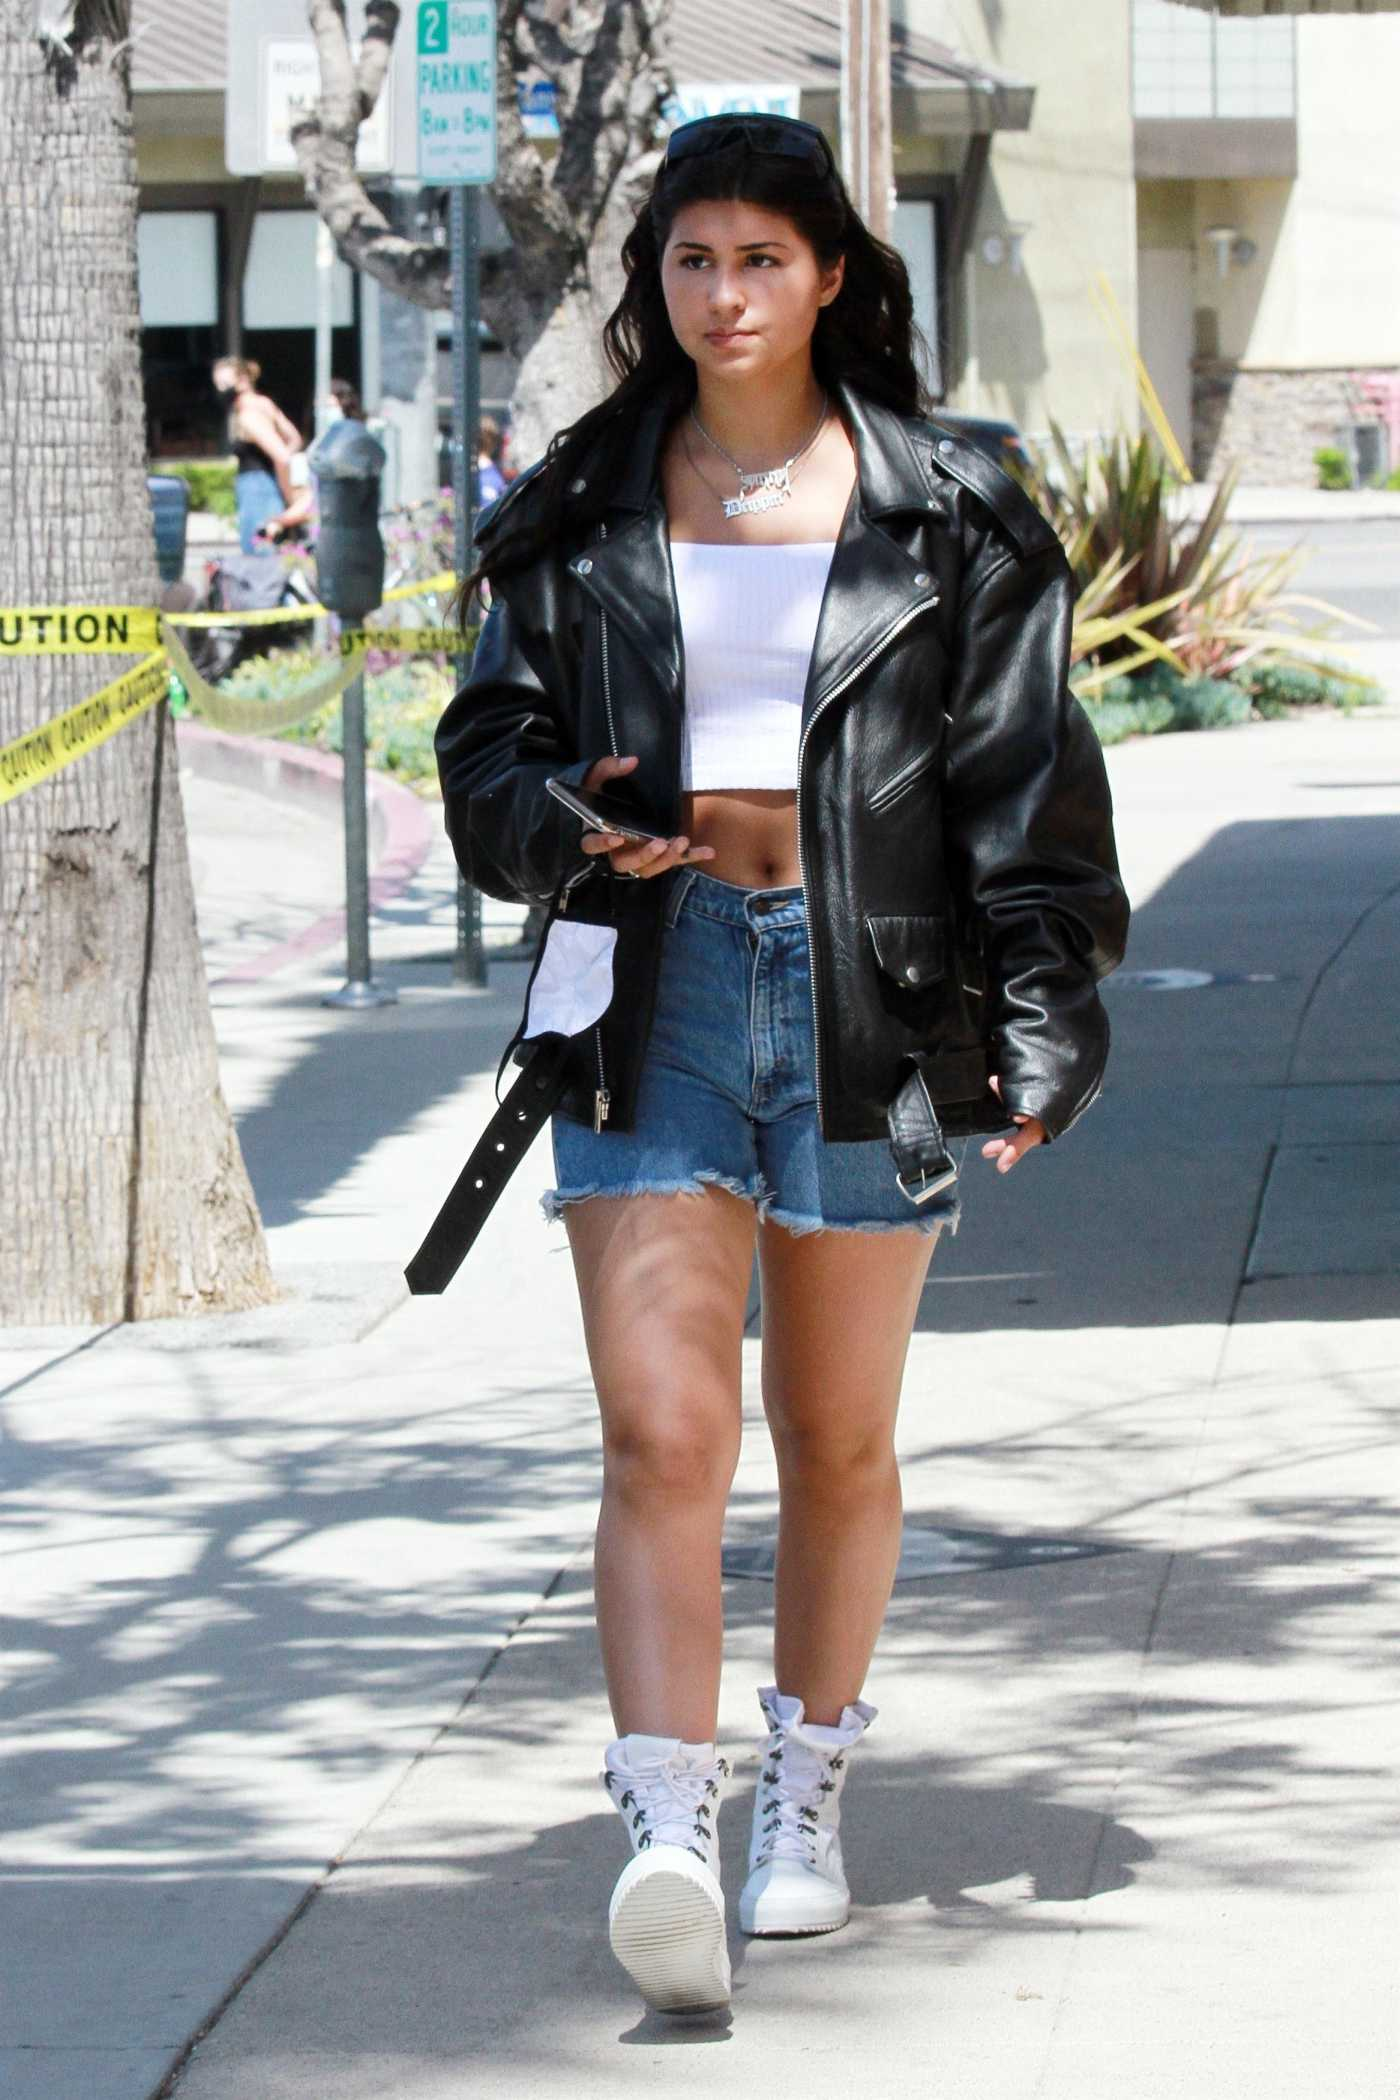 Sunny Malouf in a Black Leather Jacket Was Seen Out in Los Angeles 05/03/2020